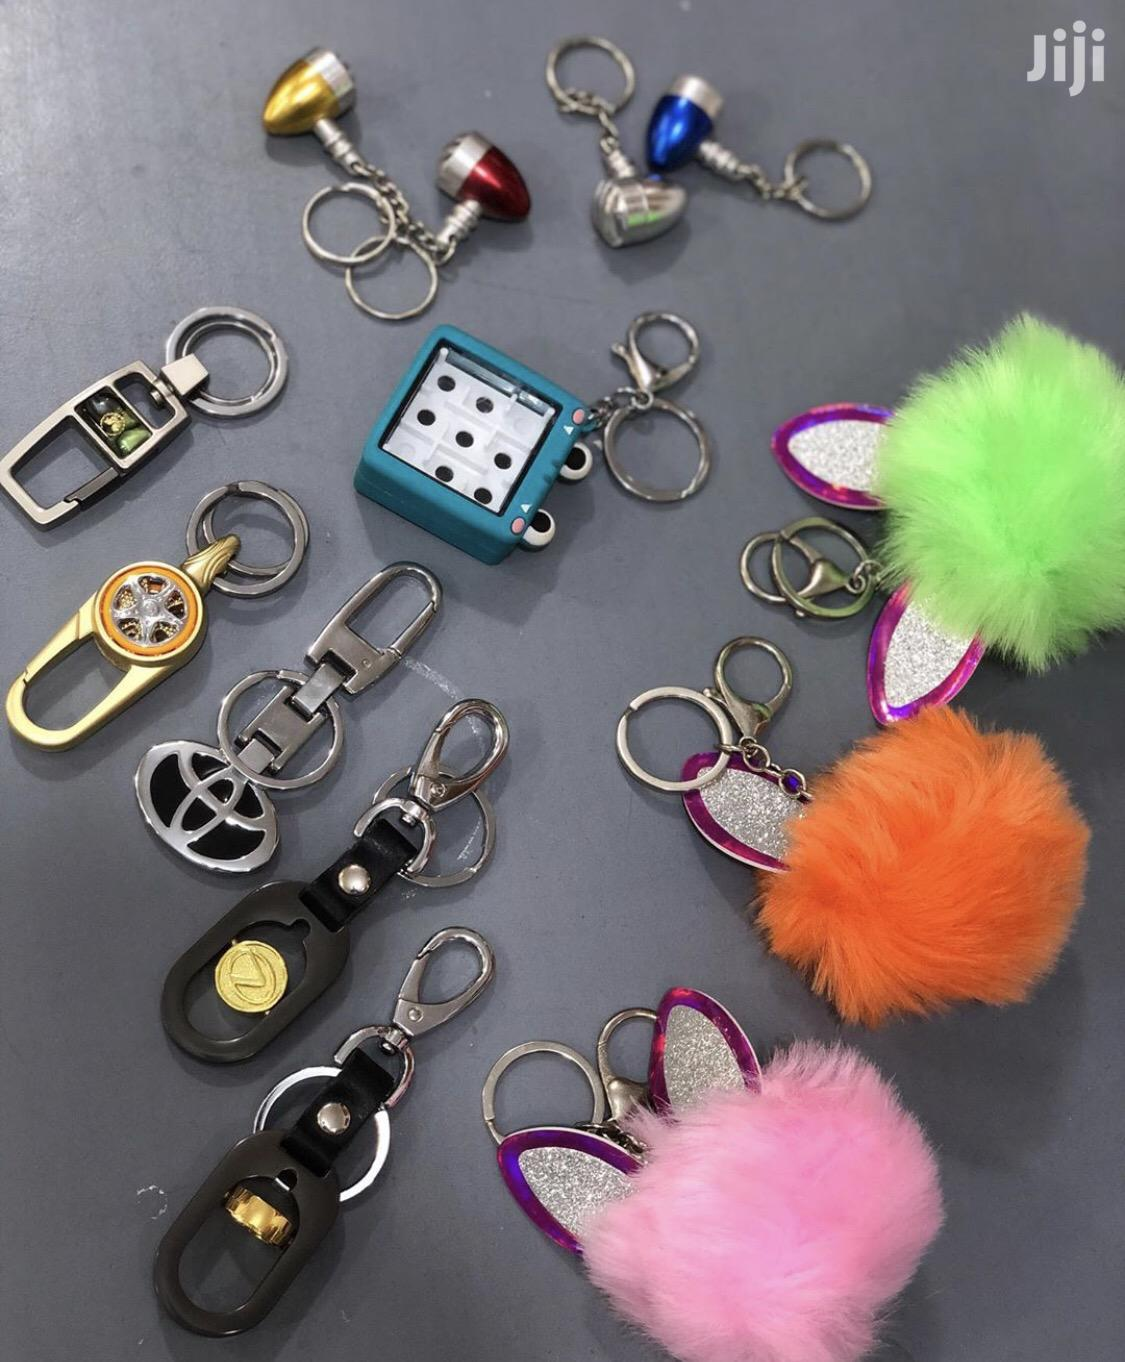 Key Holders For Vehicles